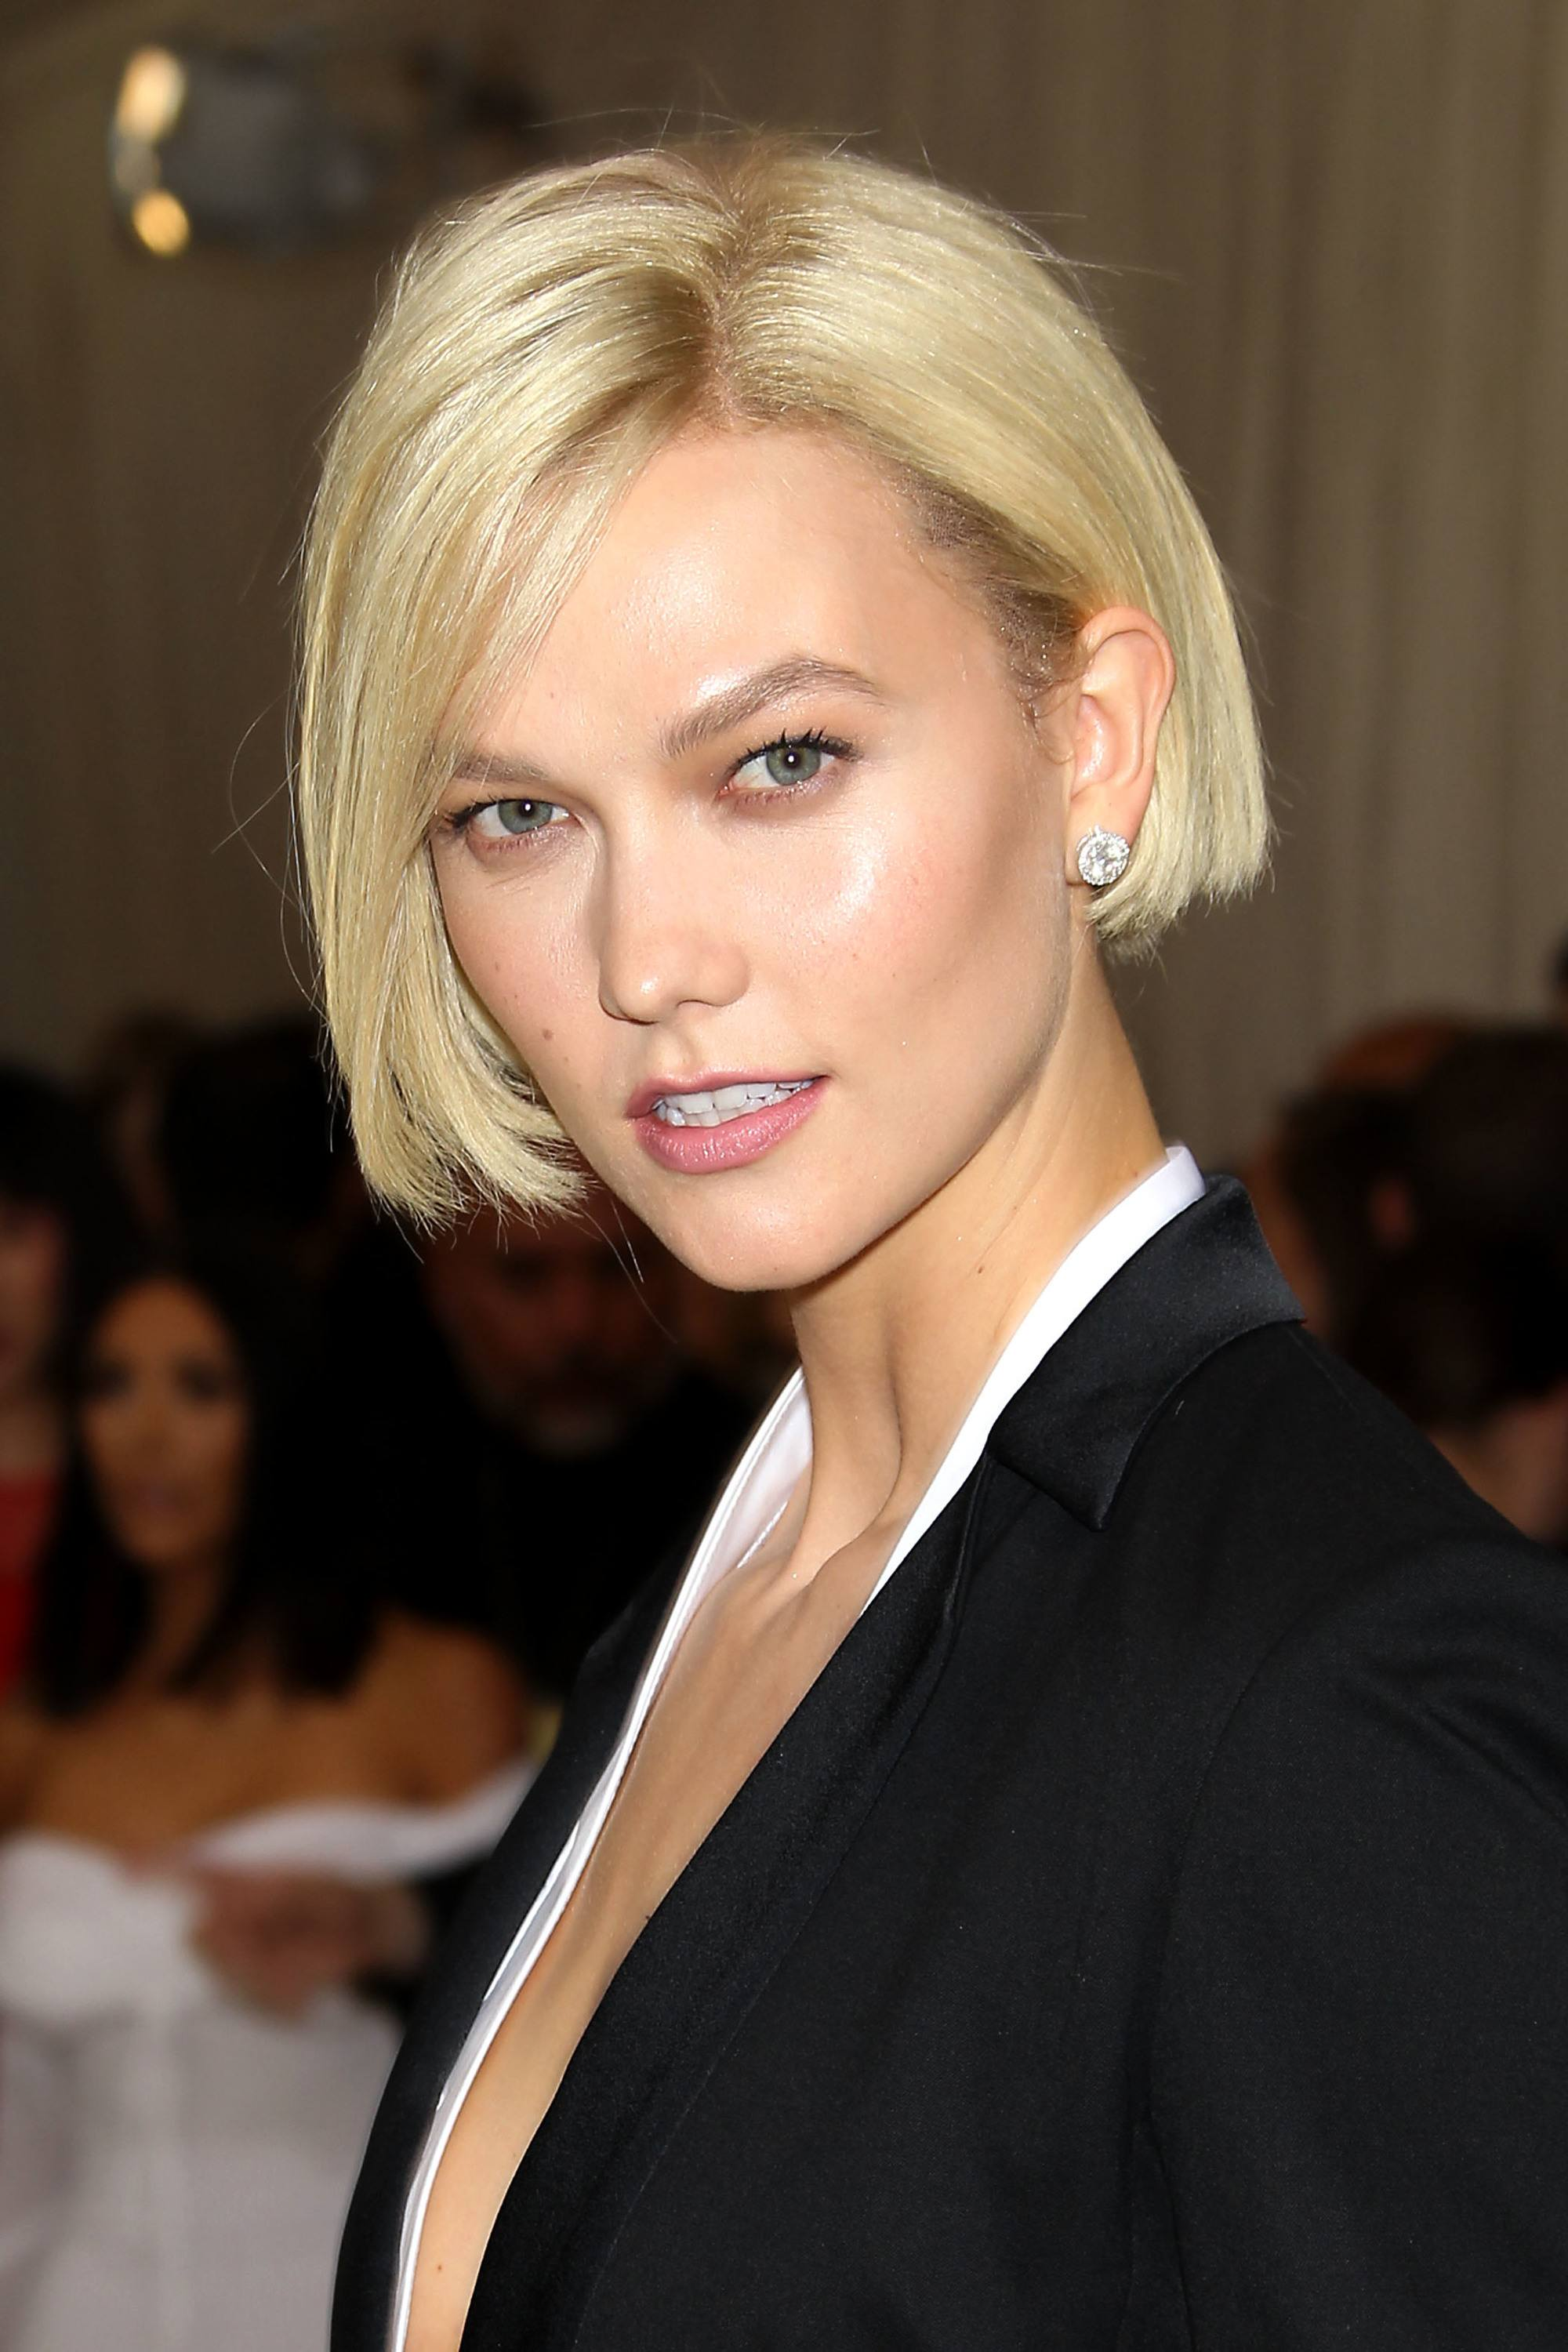 victoria's secret model karlie kloss with her blonde bob length hair tucked behind her ear